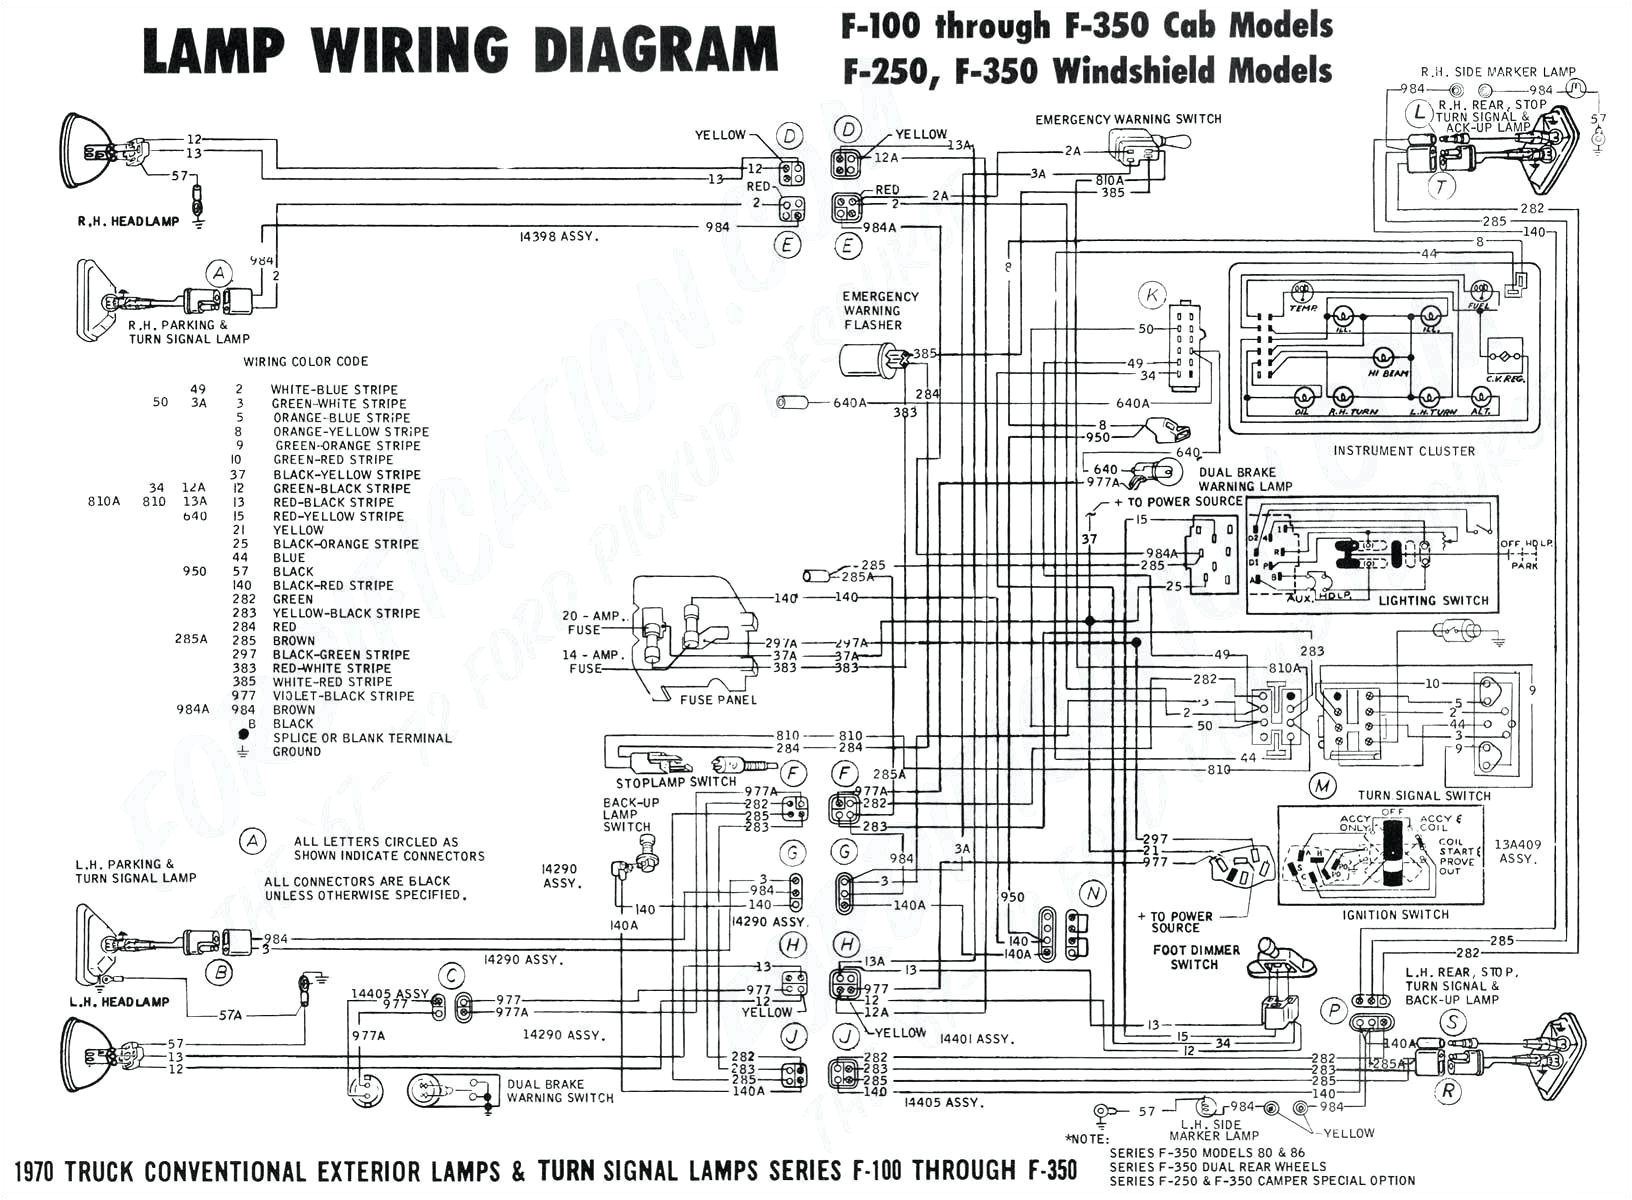 2003 trailblazer tail light circuit diagram new 2006 chevy silverado tail light wiring diagram wiring diagram of 2003 trailblazer tail light circuit diagram jpg